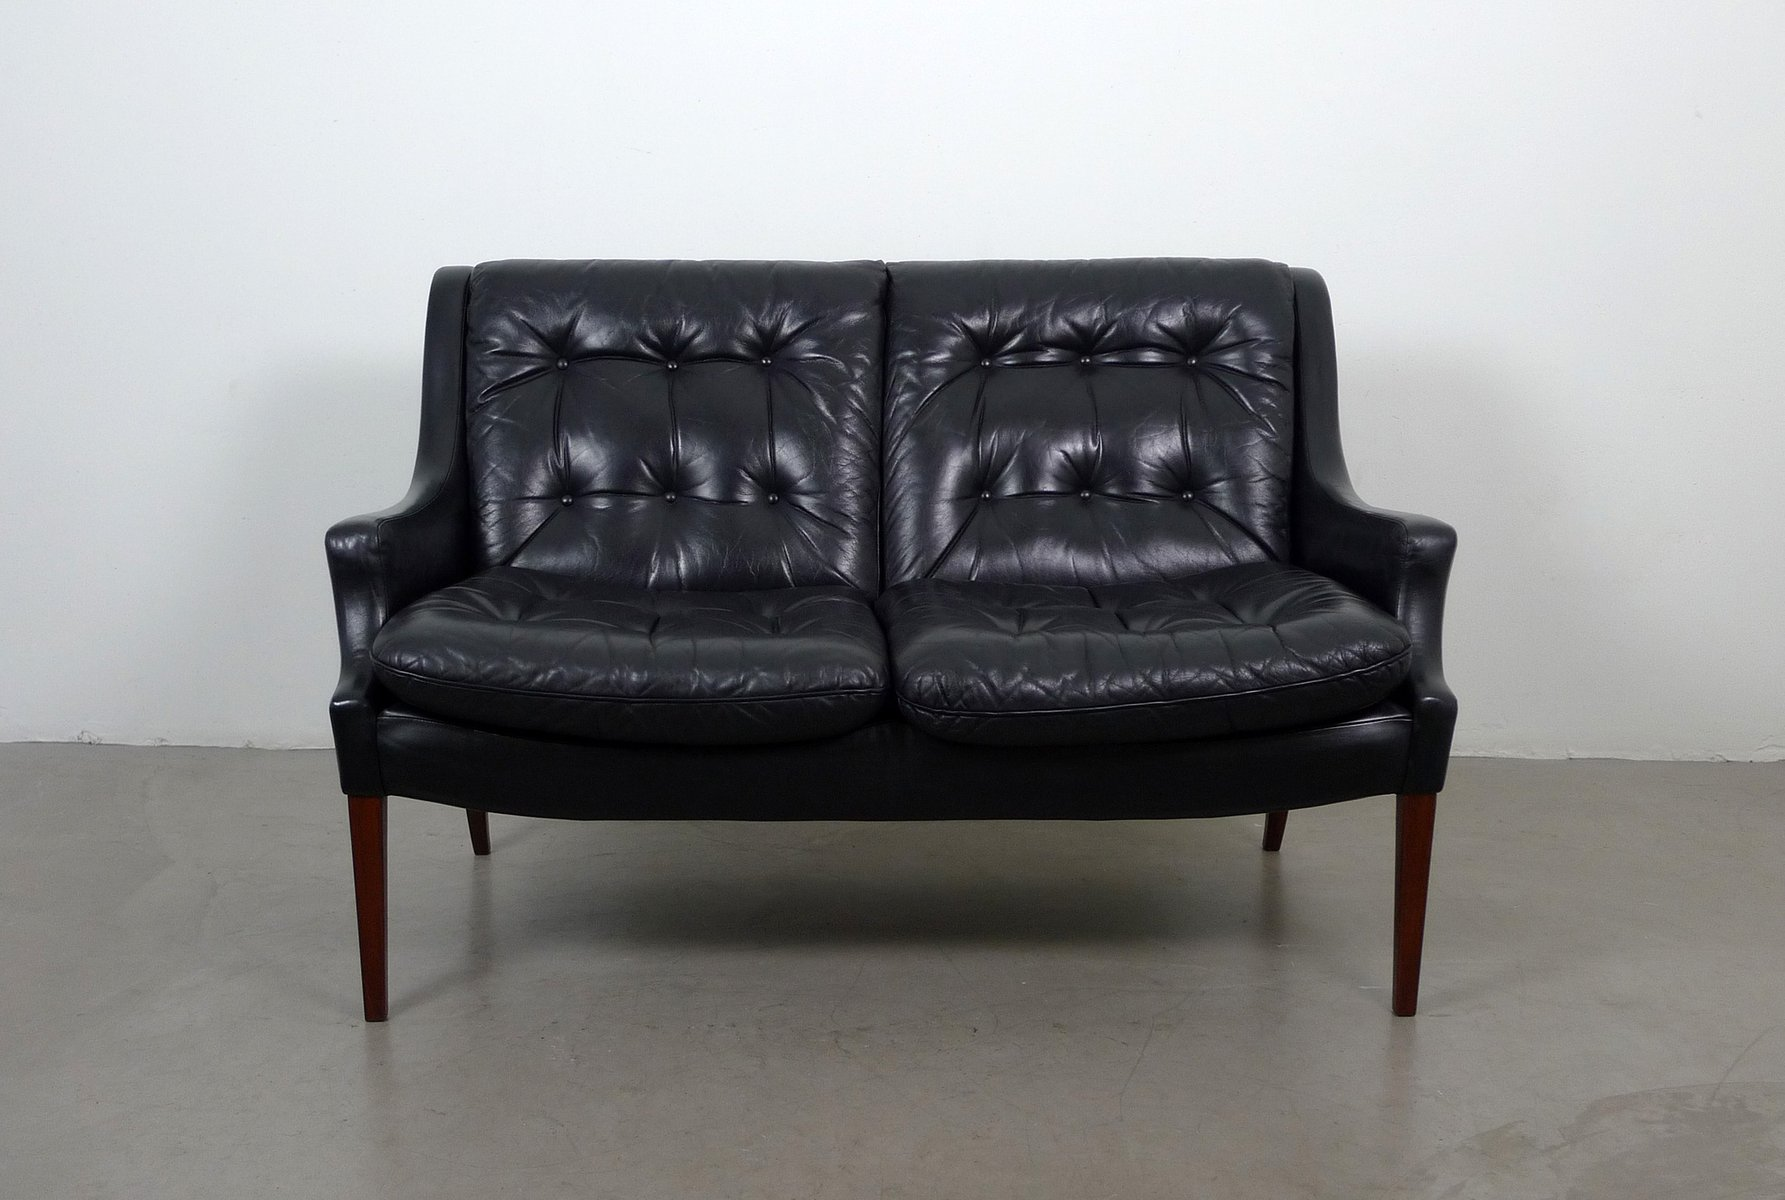 Black Leather Sofa From Walter Knoll 1960s For Sale At Pamono